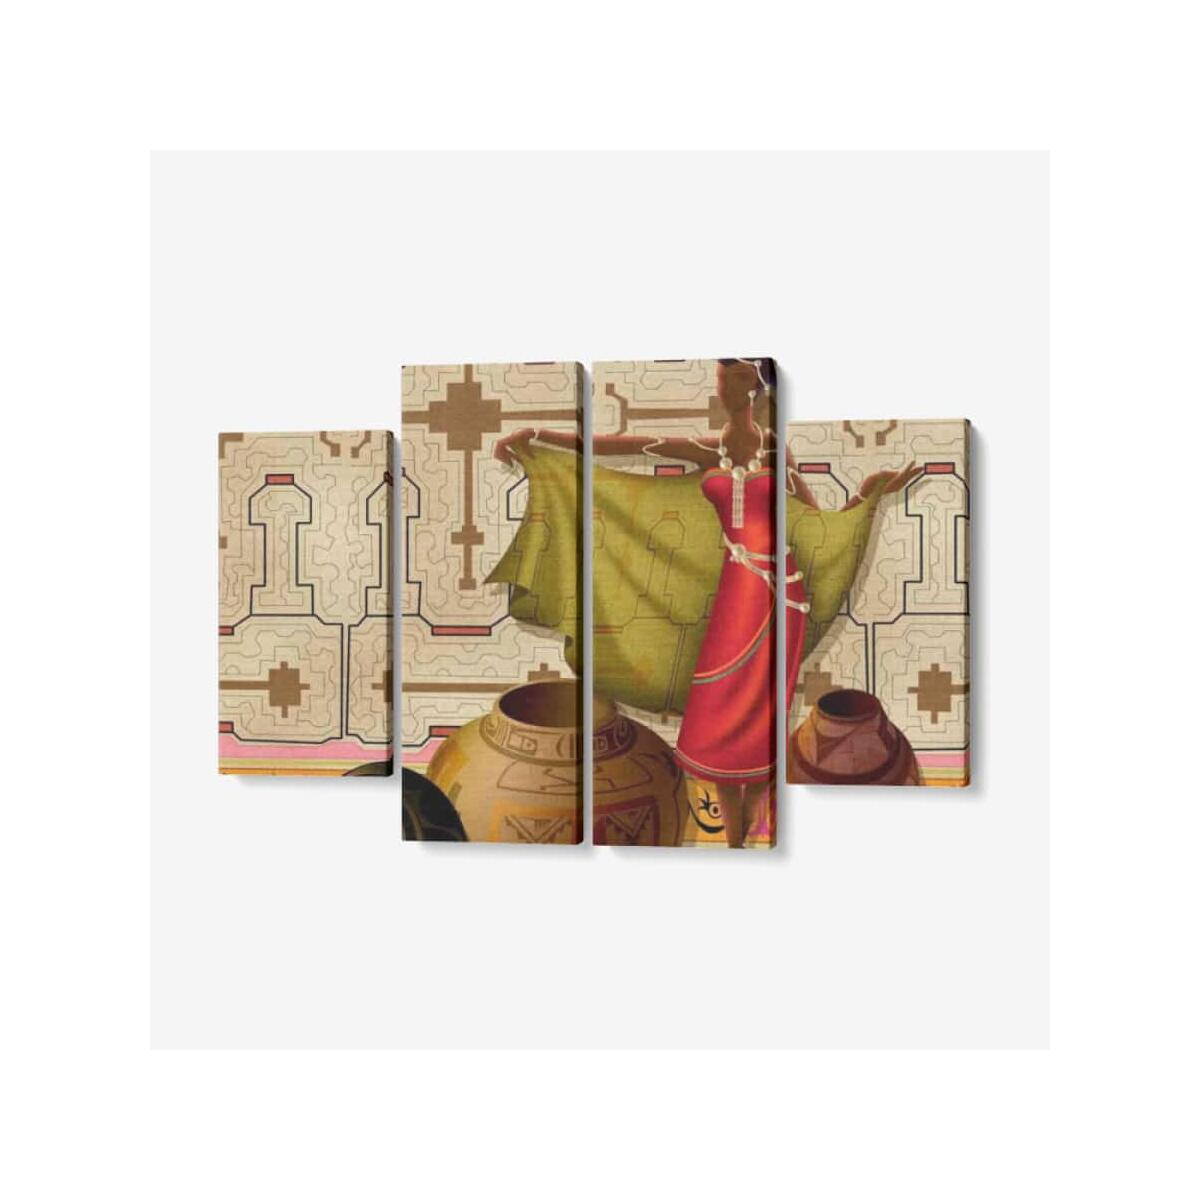 Afrocentric Merchant Queen 4 Piece Canvas Wall Art for Living Room - Framed Ready to Hang 4x12